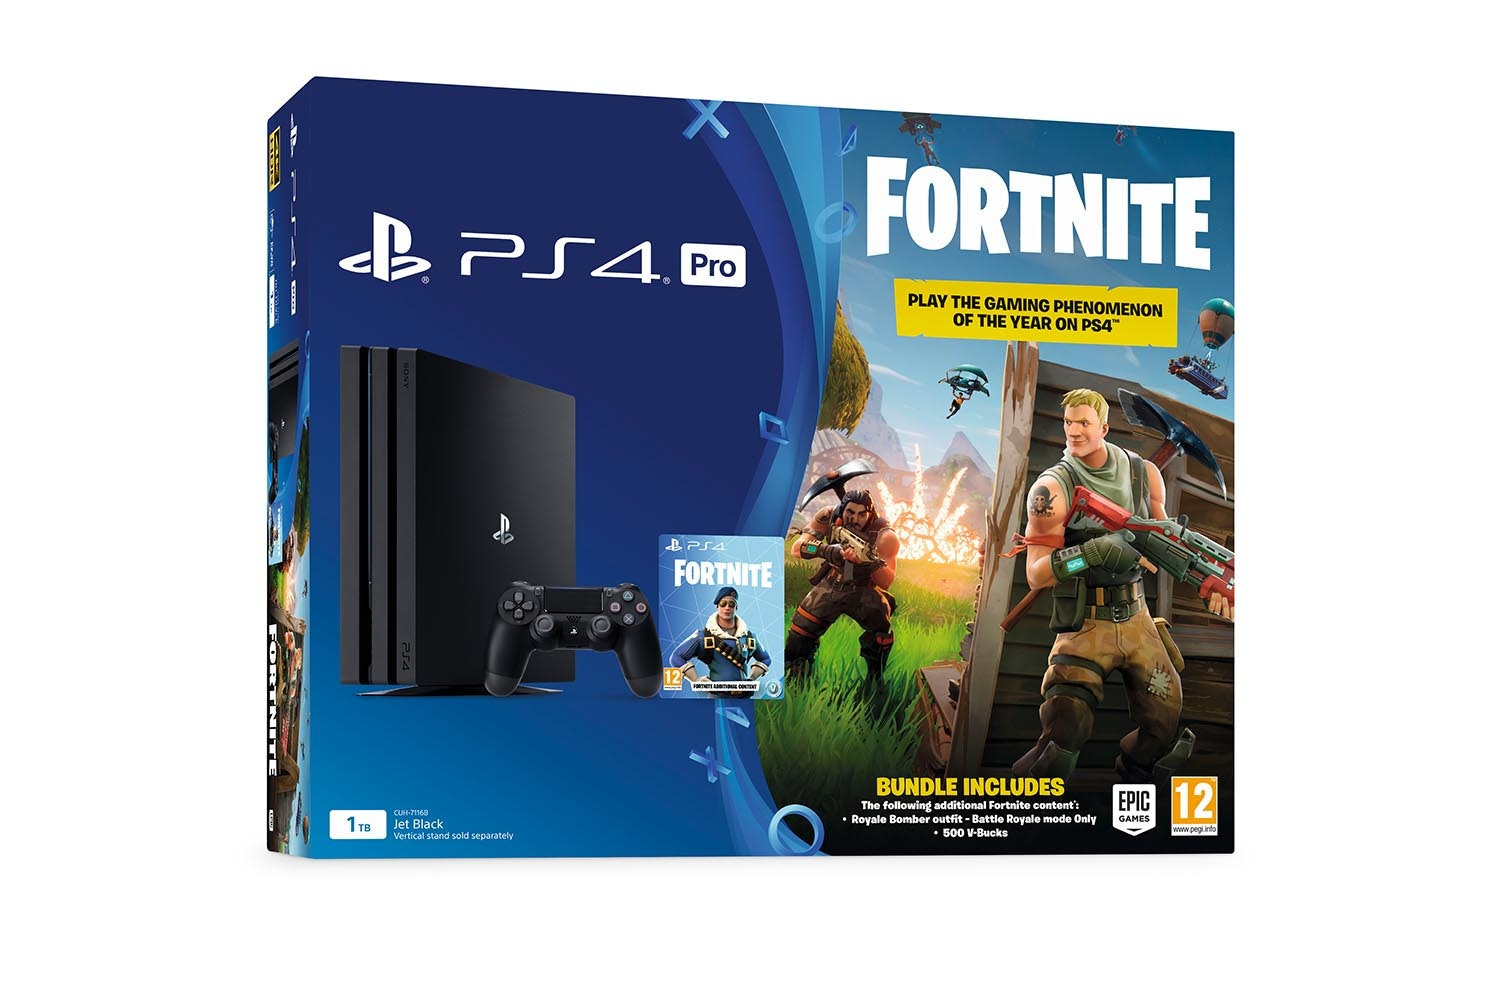 PS4 Pro 1TB Fortnite Battle Royale bundle